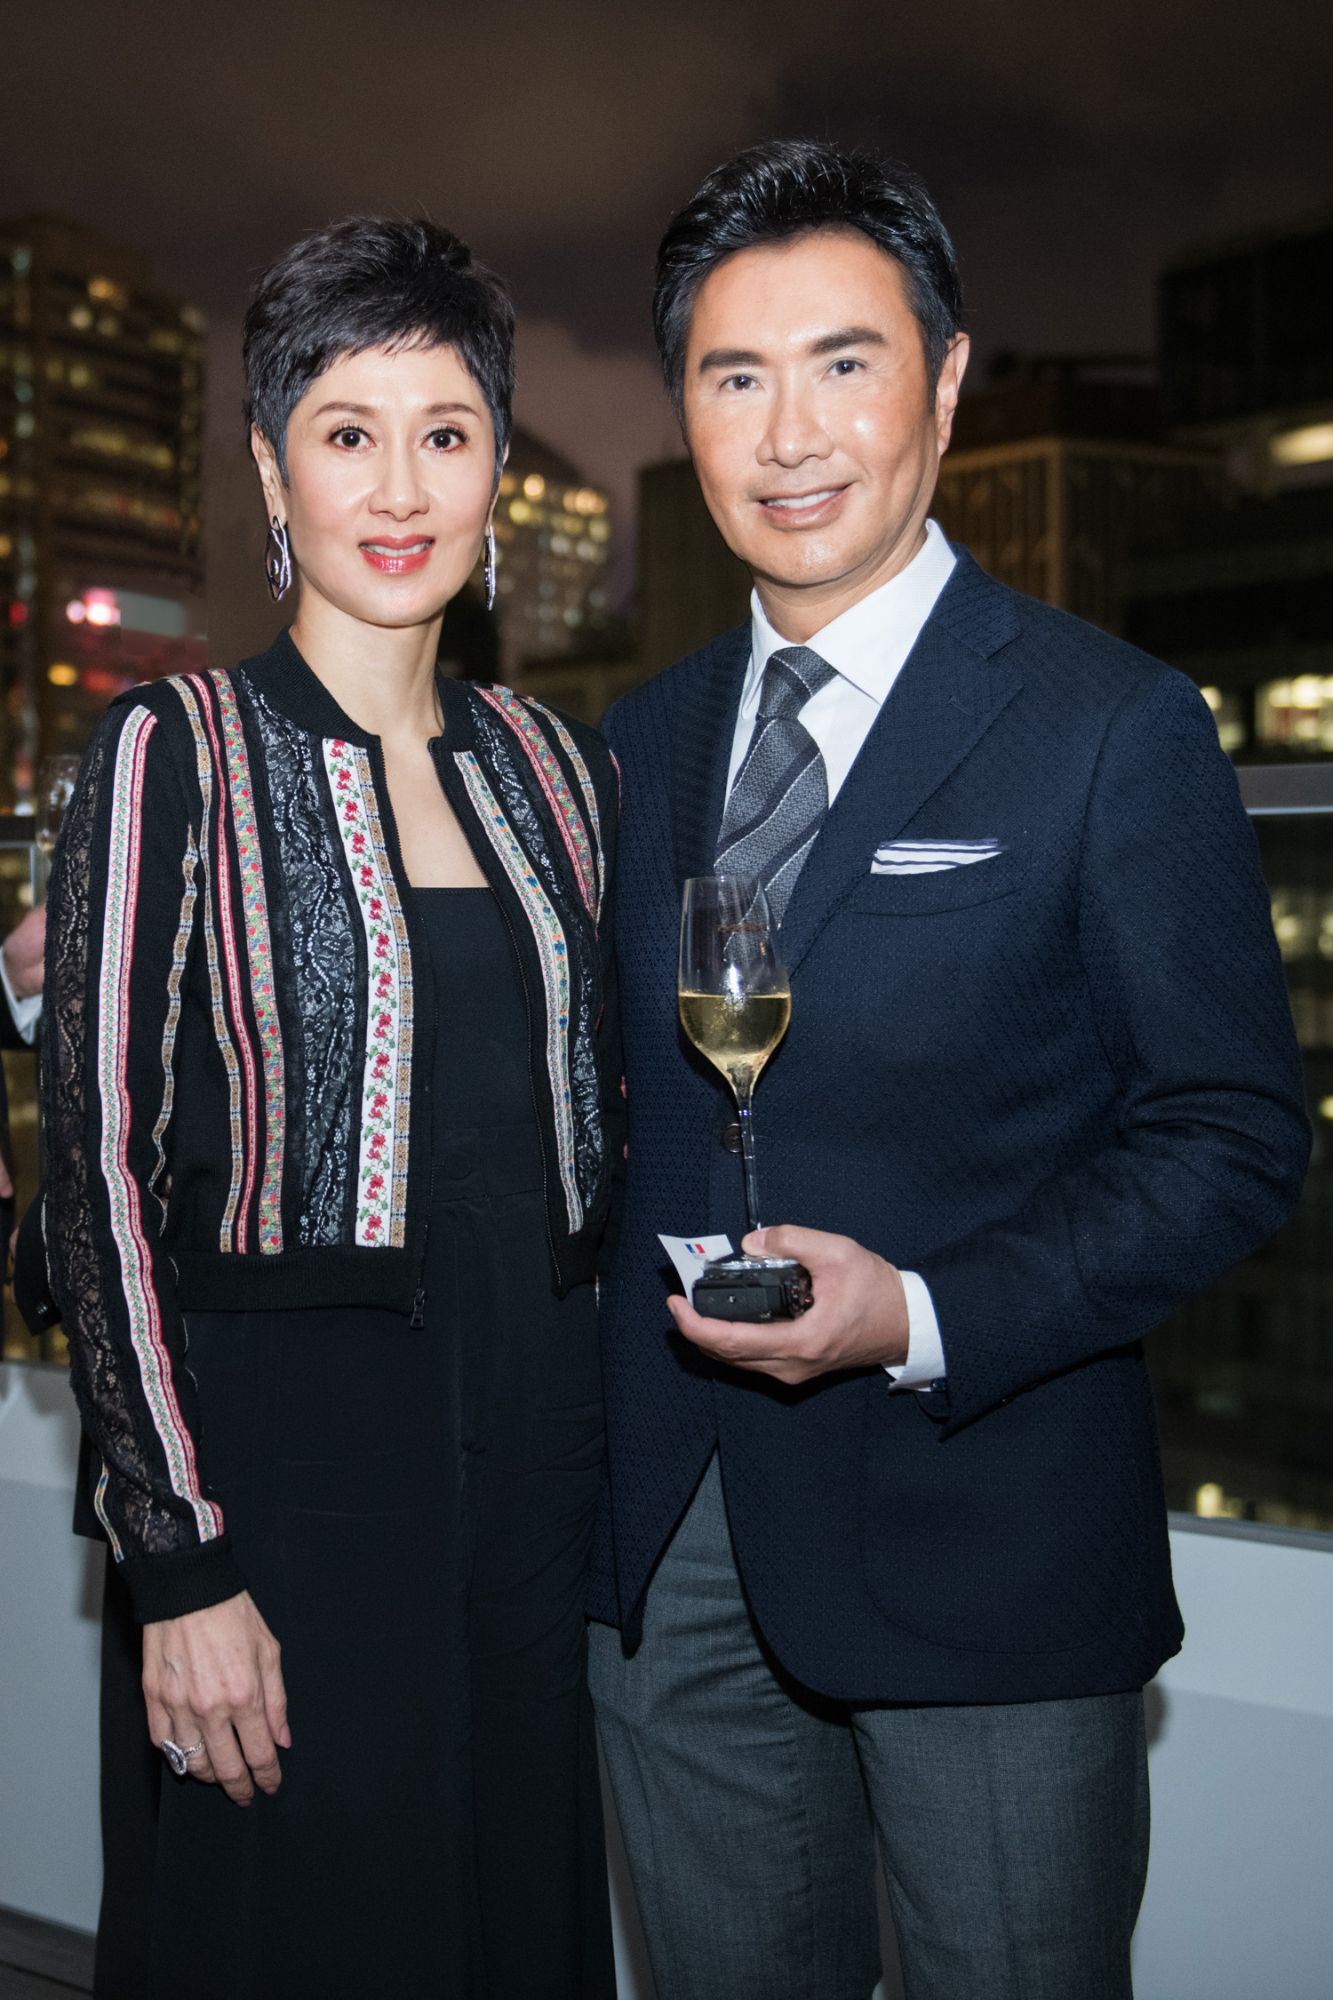 Michelle Ong, William Louey